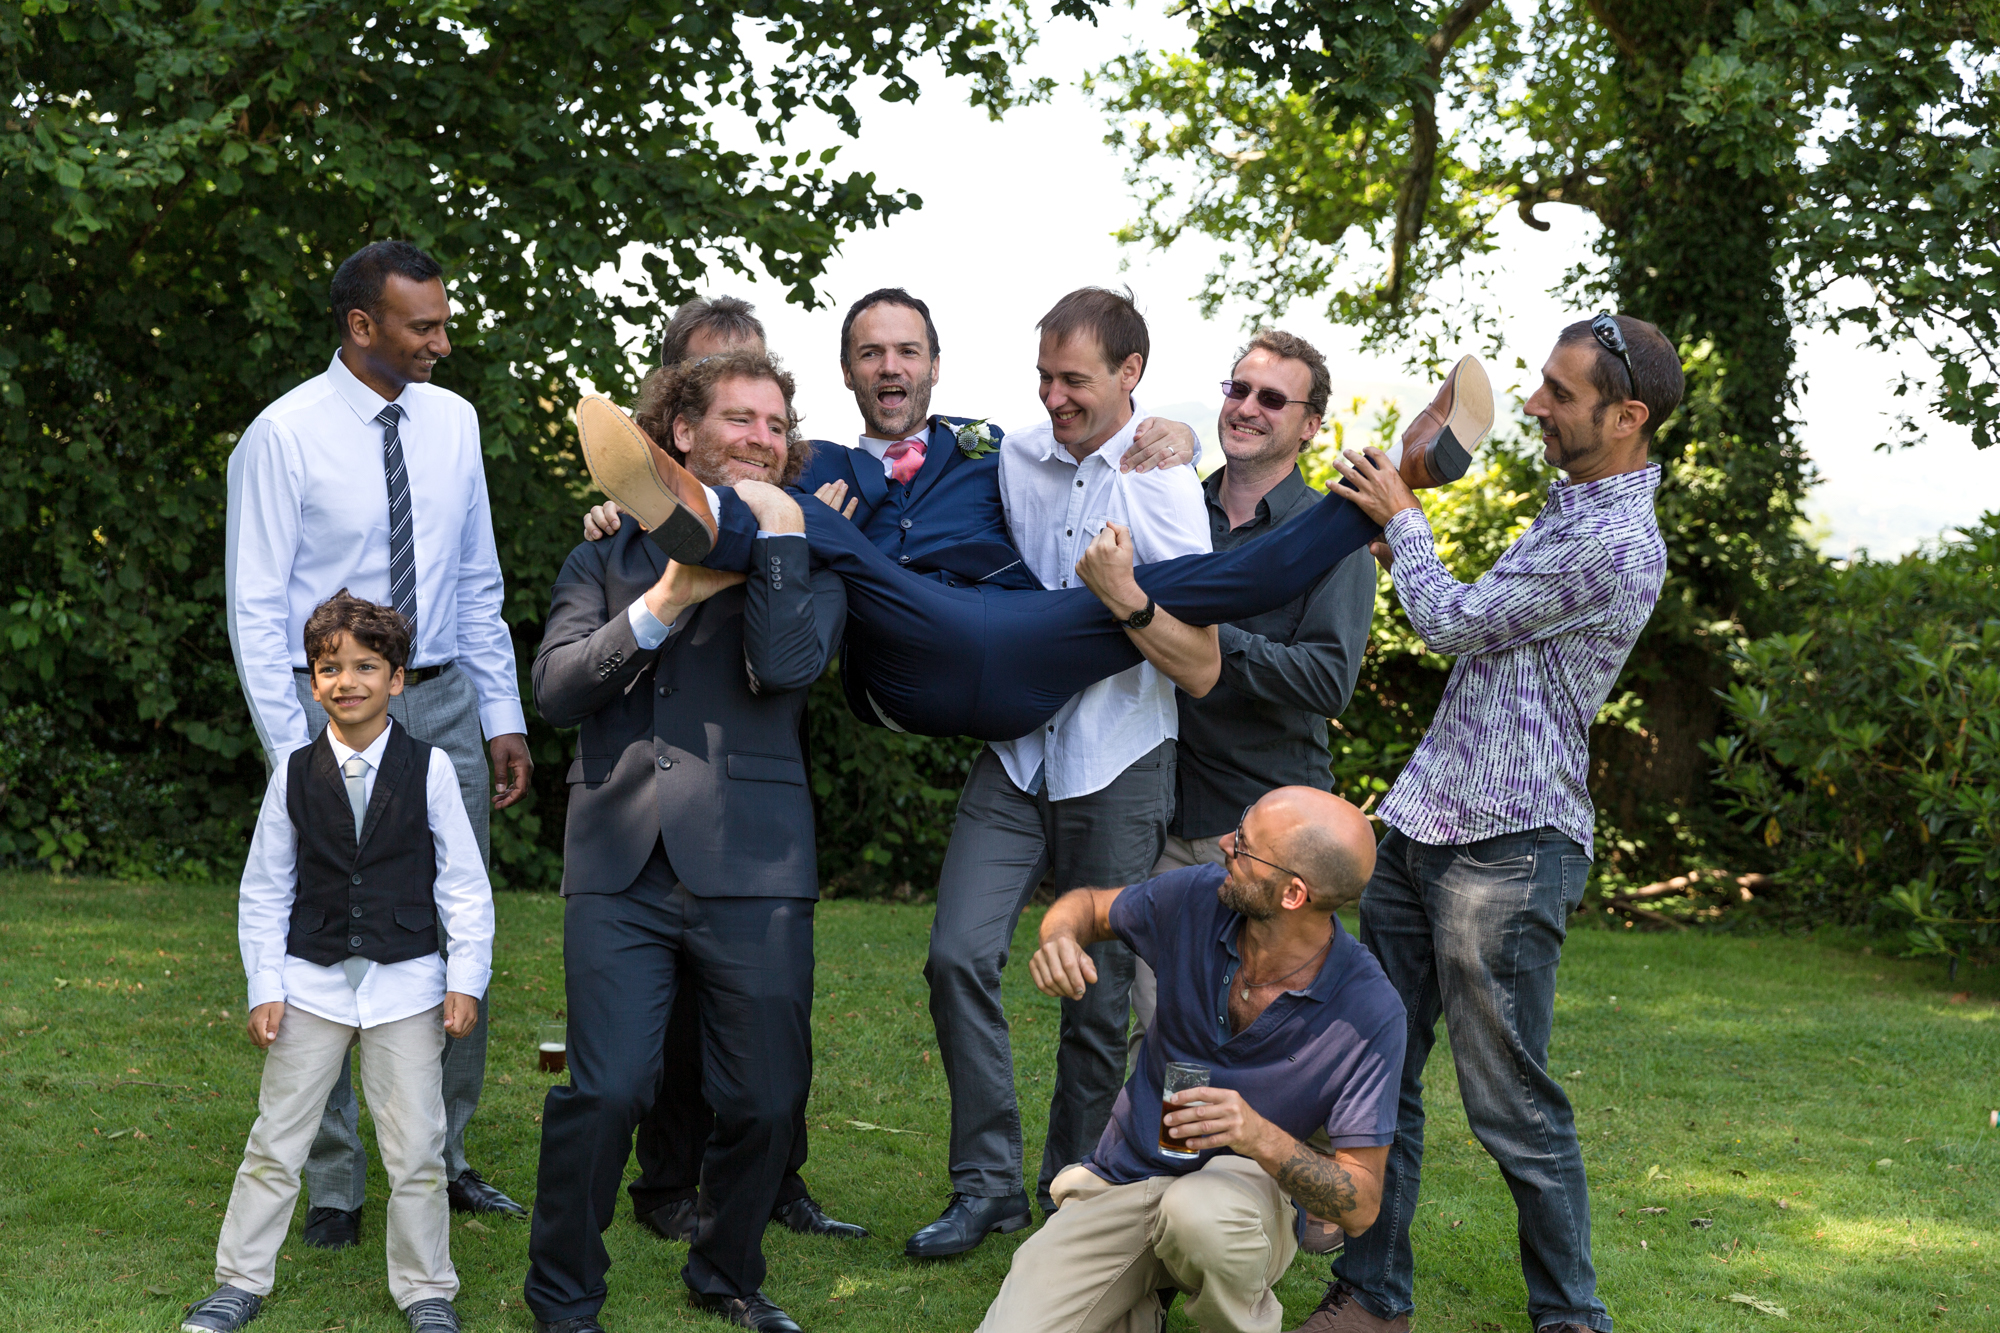 Groom and his friends at llechwen hall wedding